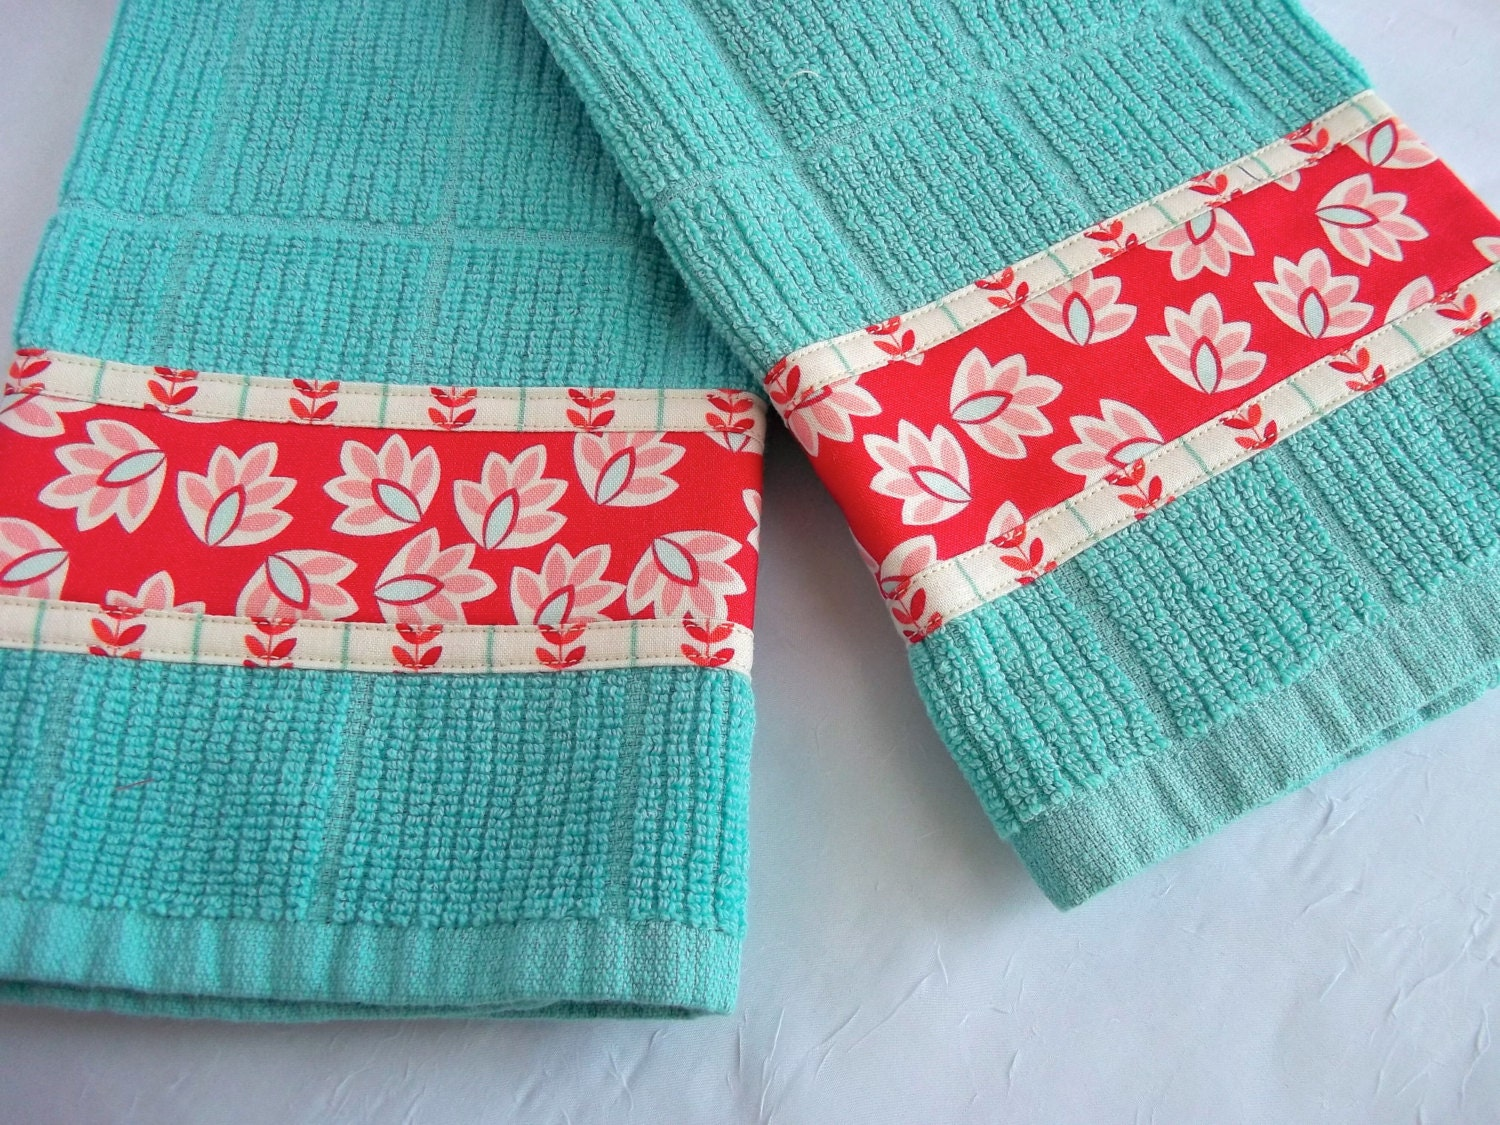 Find great deals on eBay for turquoise kitchen towels. Shop with confidence.